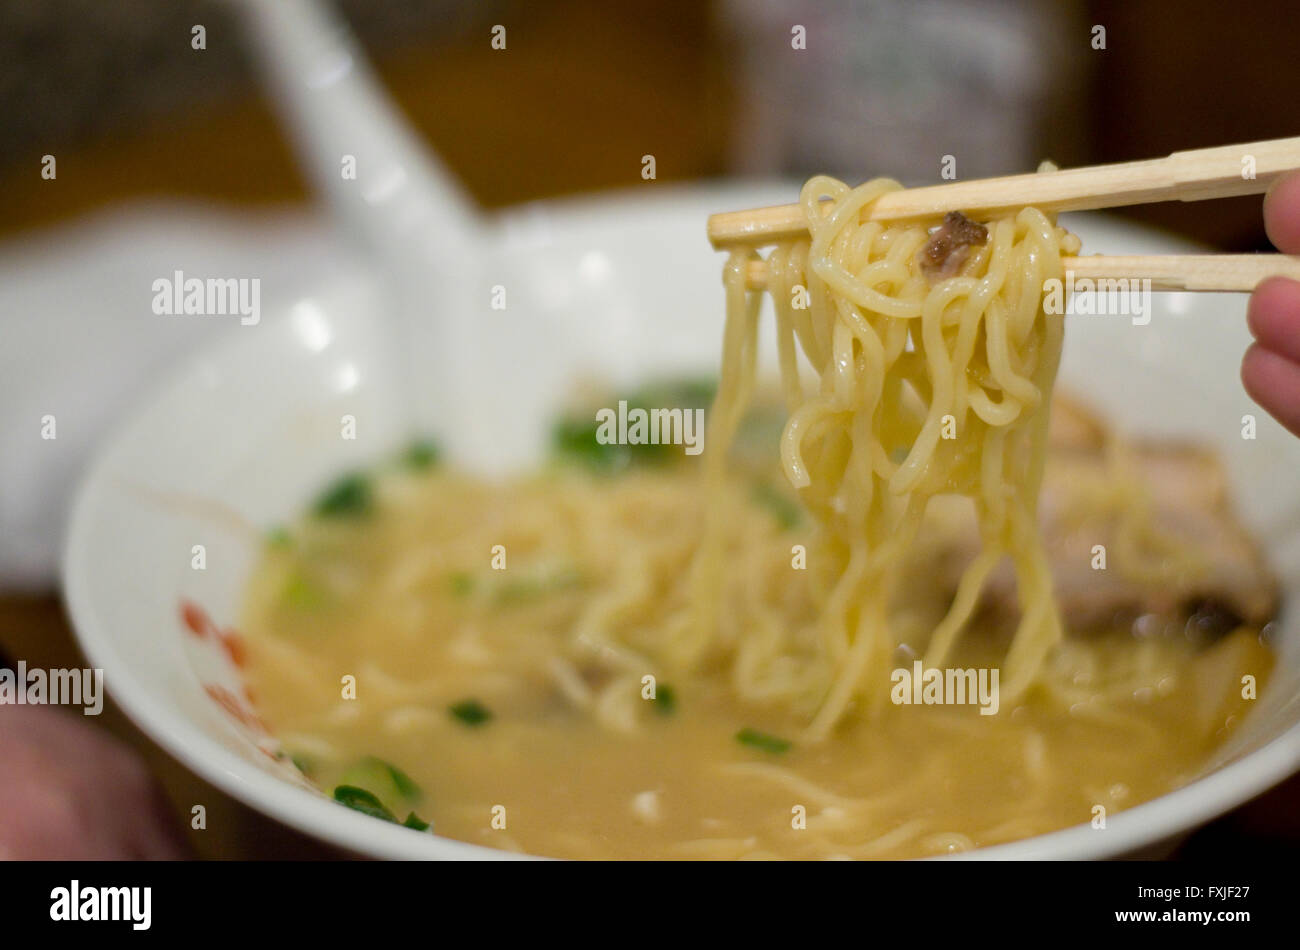 japanese-ramen-noodles-being-eaten-with-